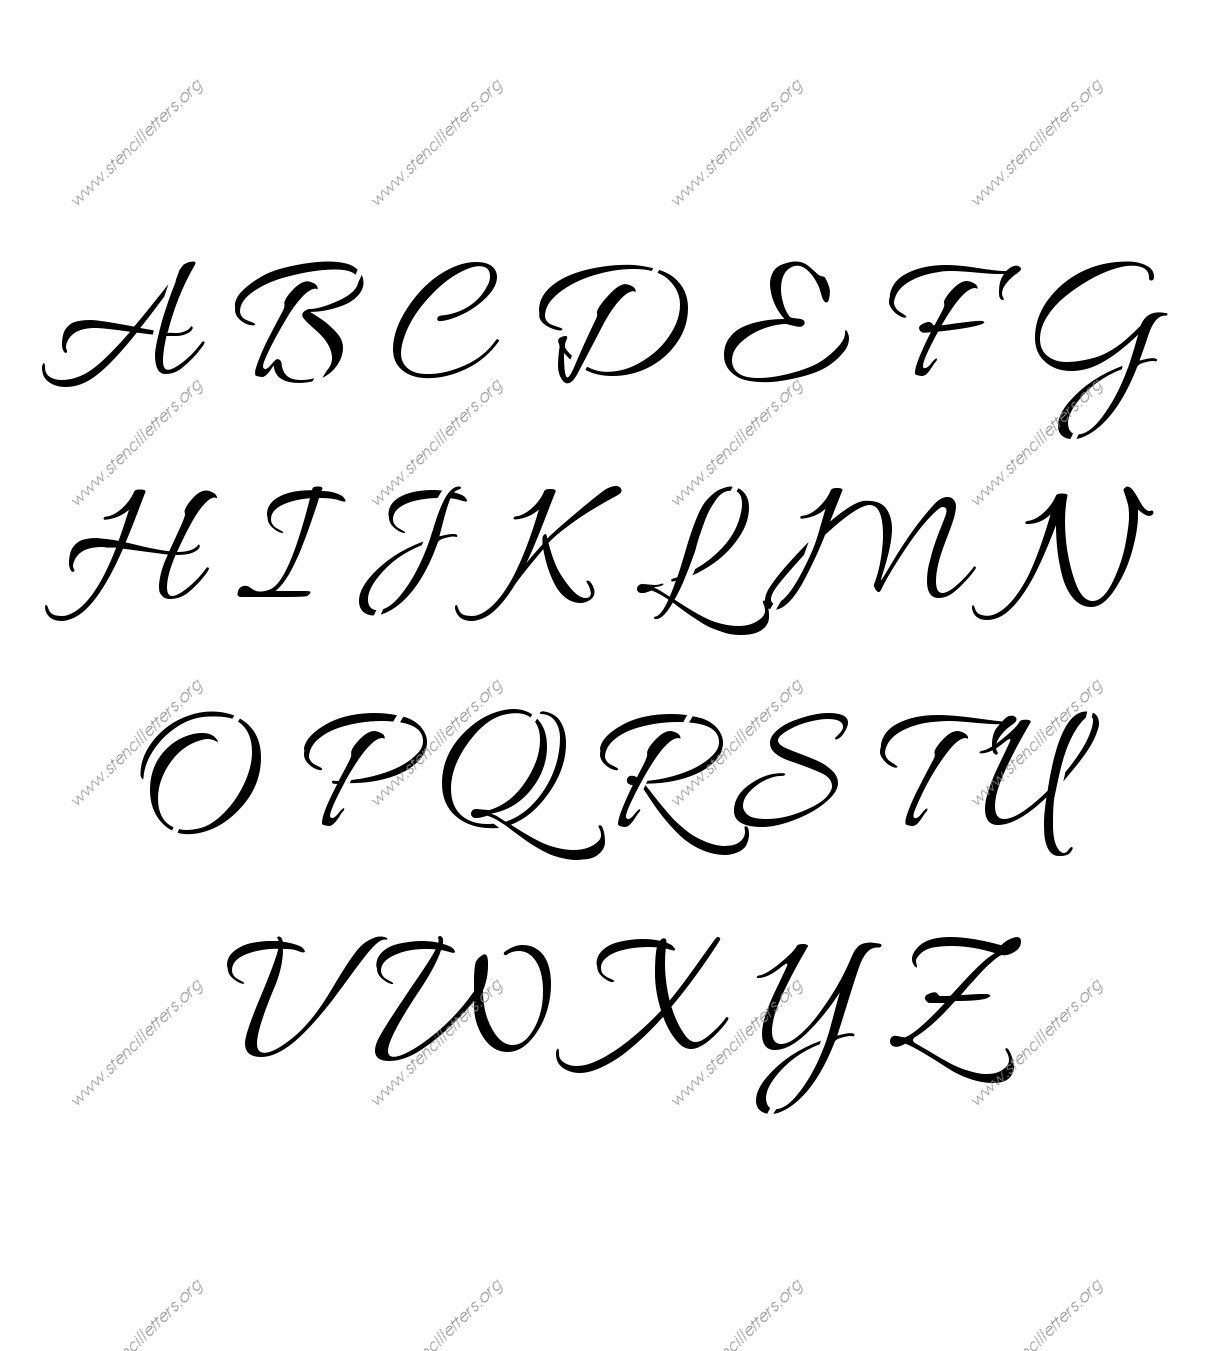 Connected Cursive Stencil Letter Set